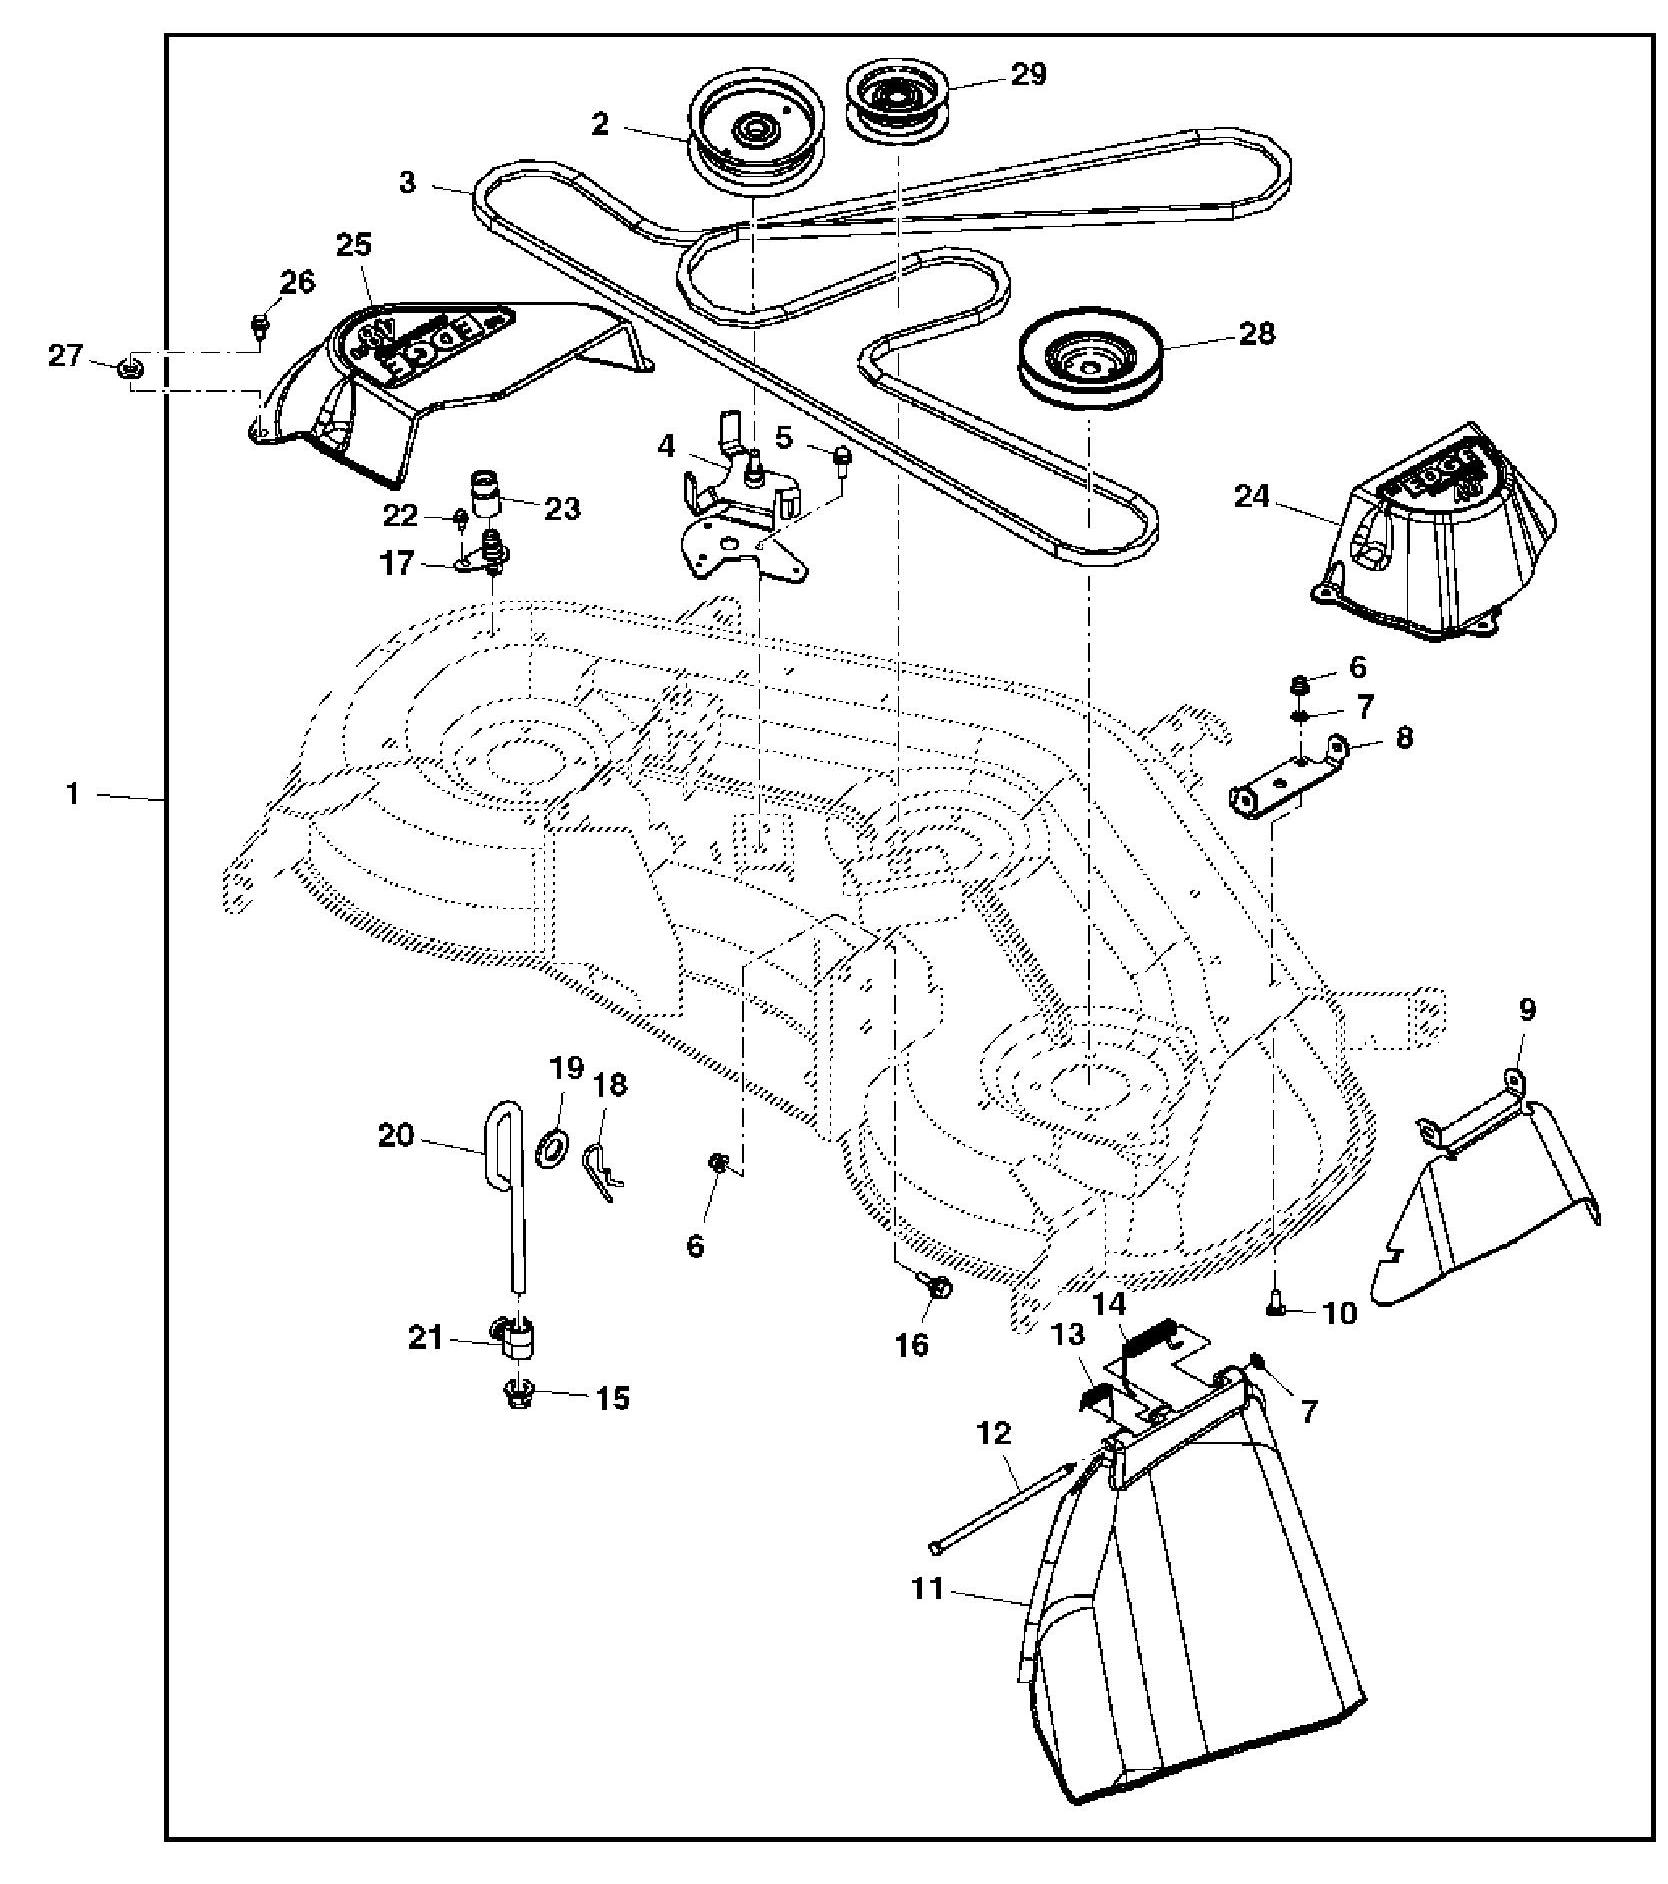 John Deere 425 54 Inch Mower Deck Parts Diagram Wiring Diagrams